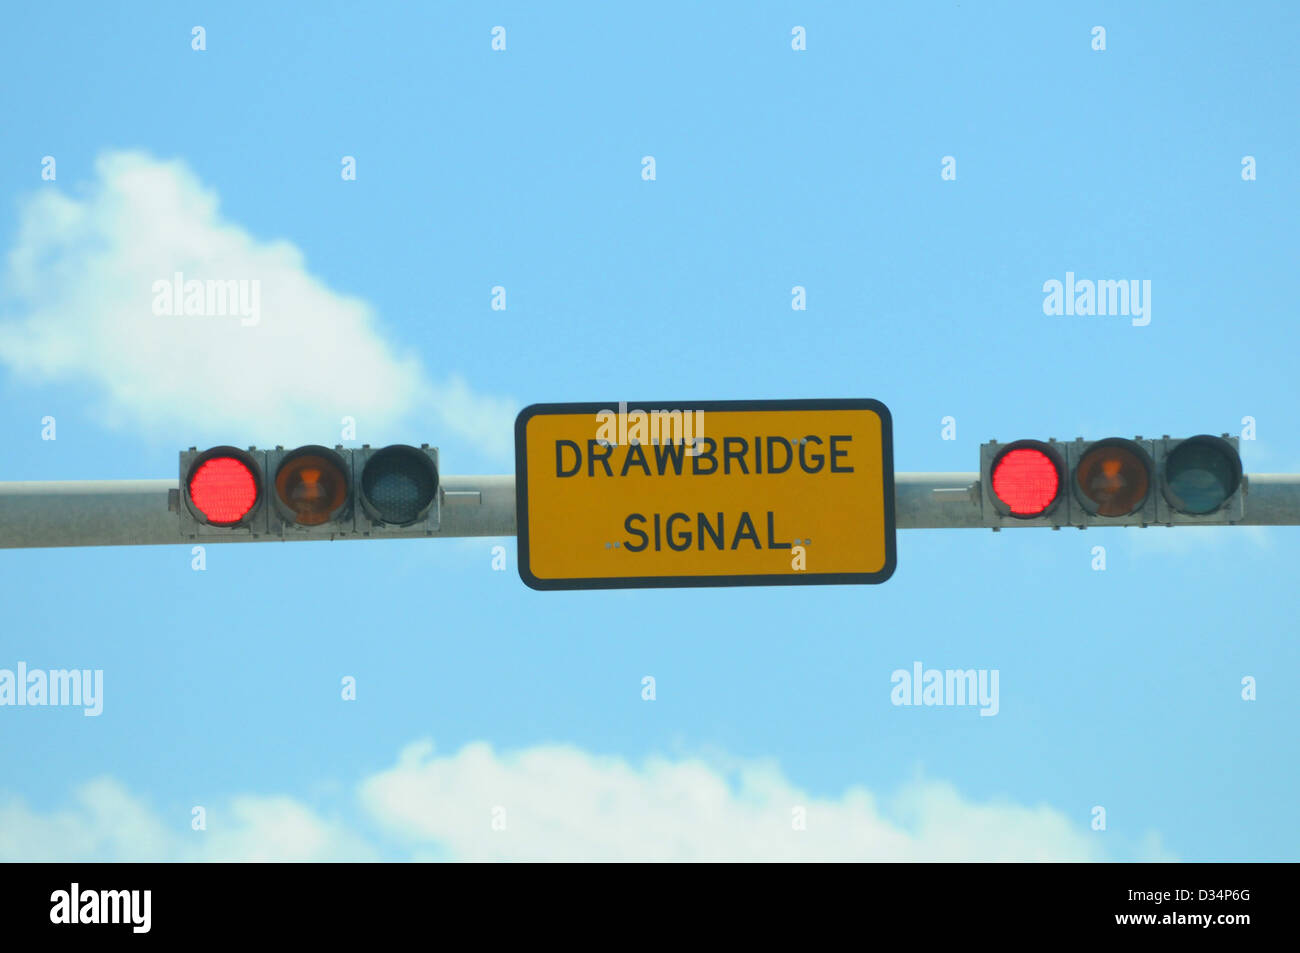 stop for drawbridge sign for a warning when bridge is up - Stock Image